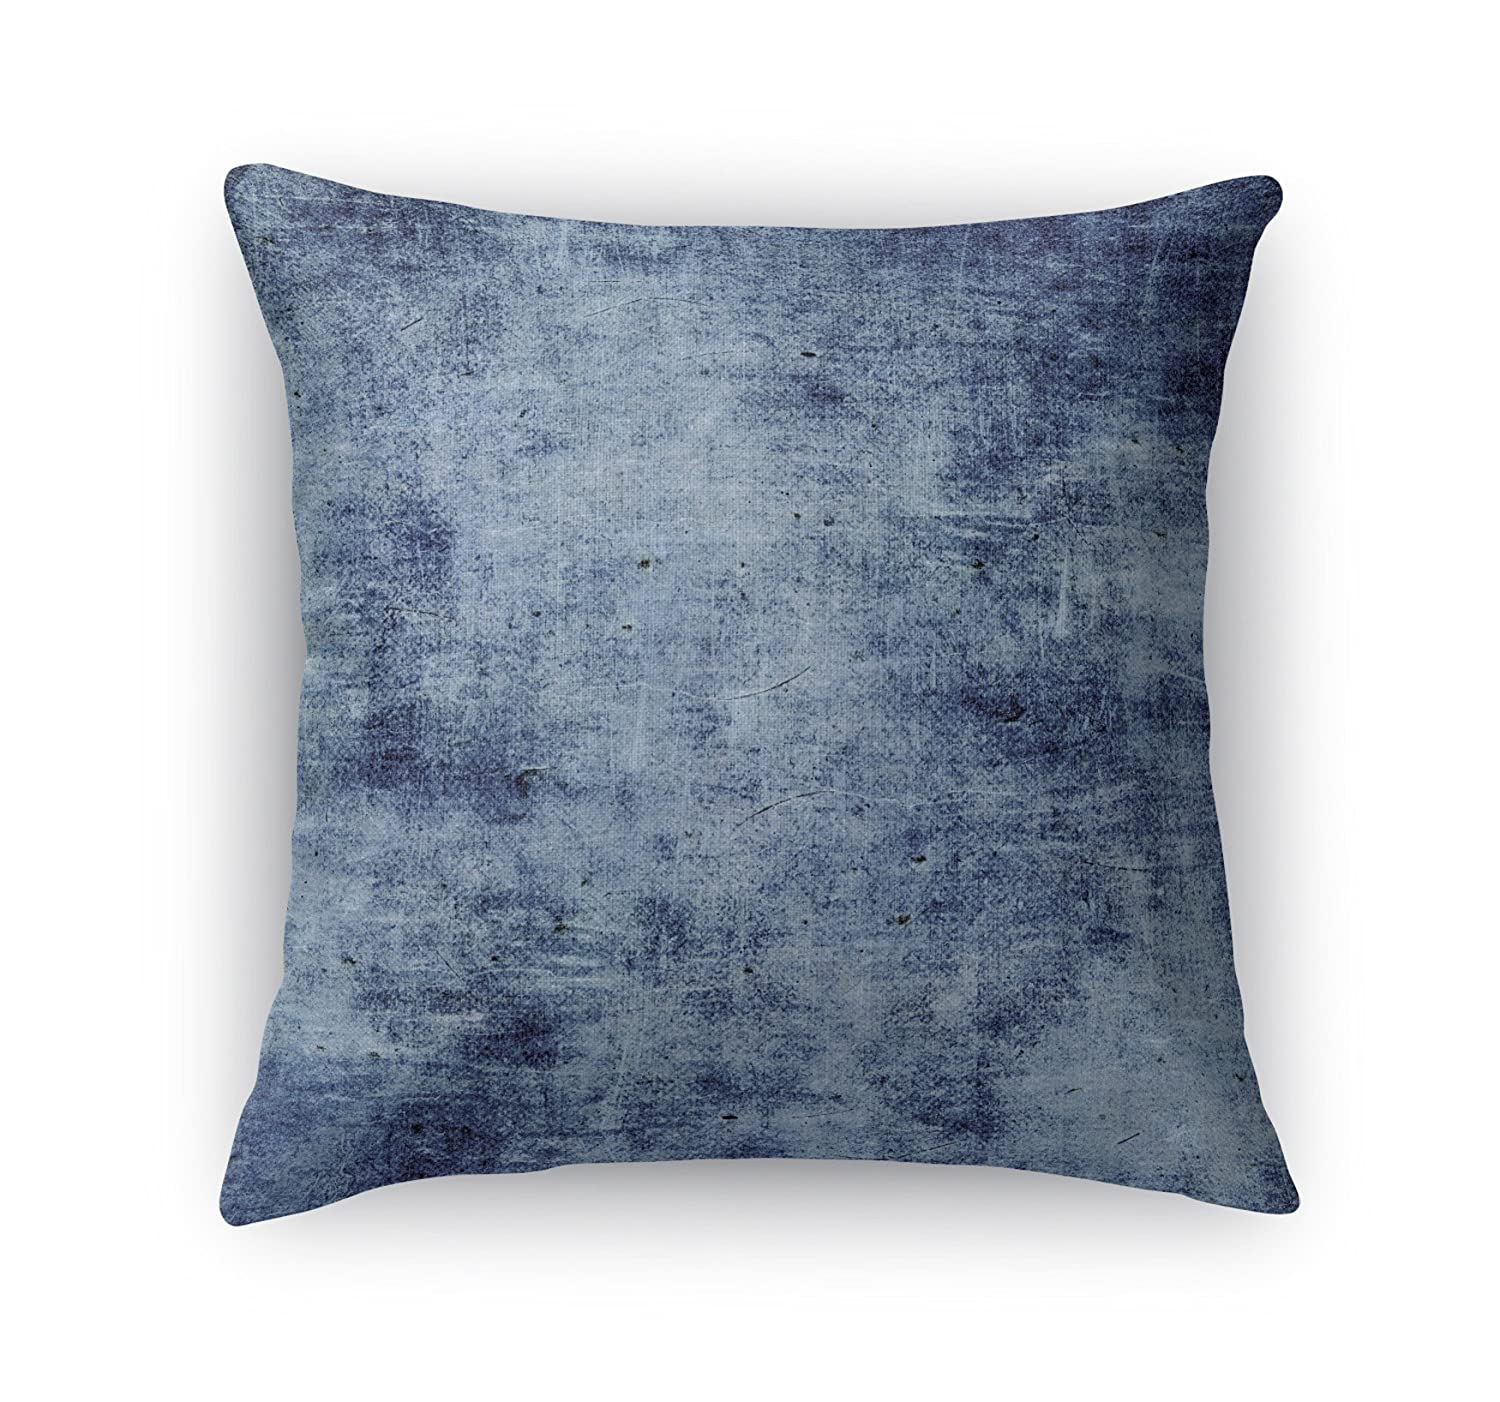 - Encompass Collection Size: 24X24X6 - Blue KAVKA Designs Caserta Accent Pillow, TELAVC1496DI24